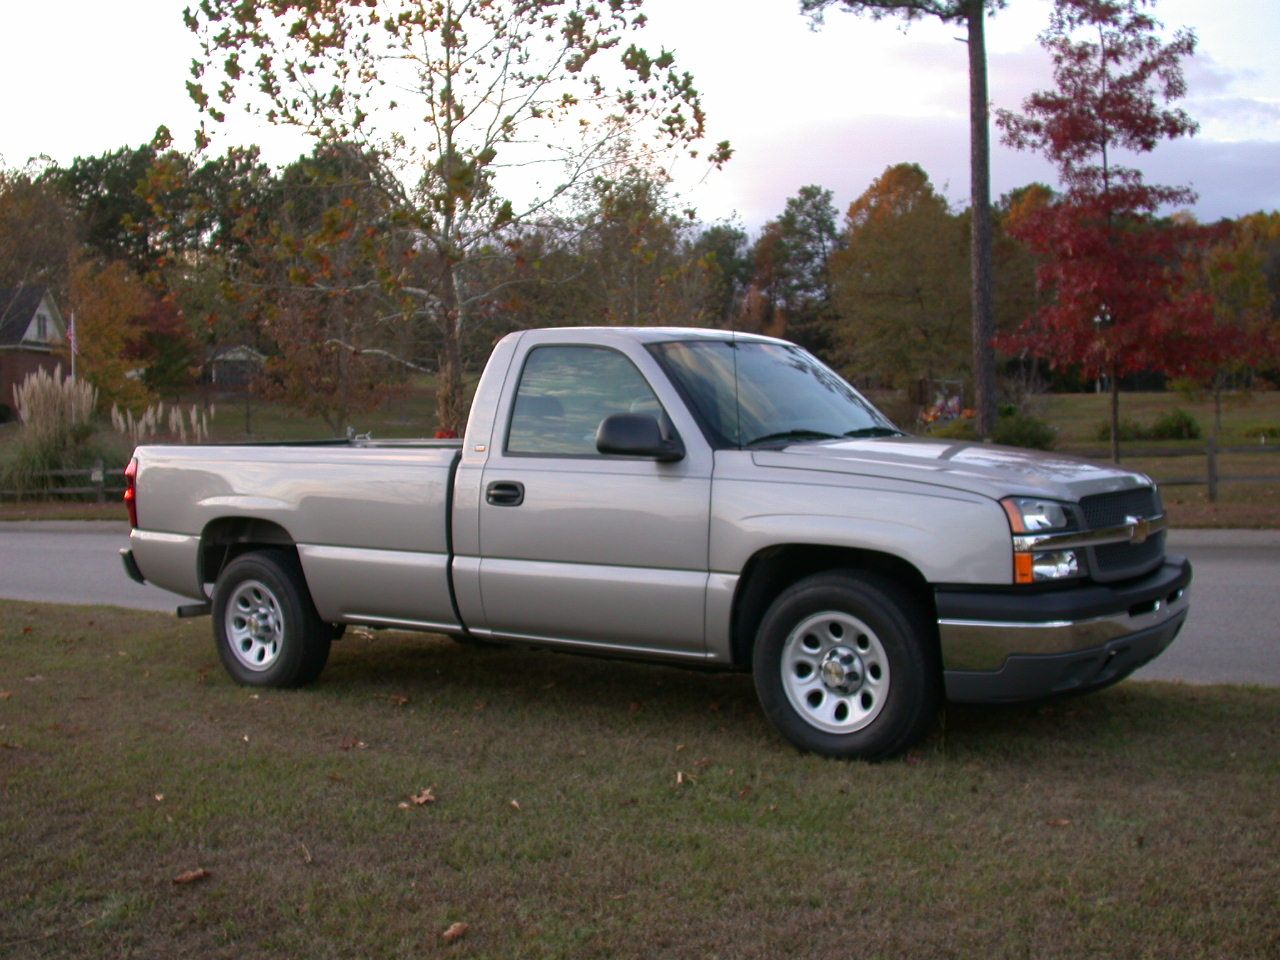 chevy silverado lifted for sale craigslist autos weblog. Black Bedroom Furniture Sets. Home Design Ideas